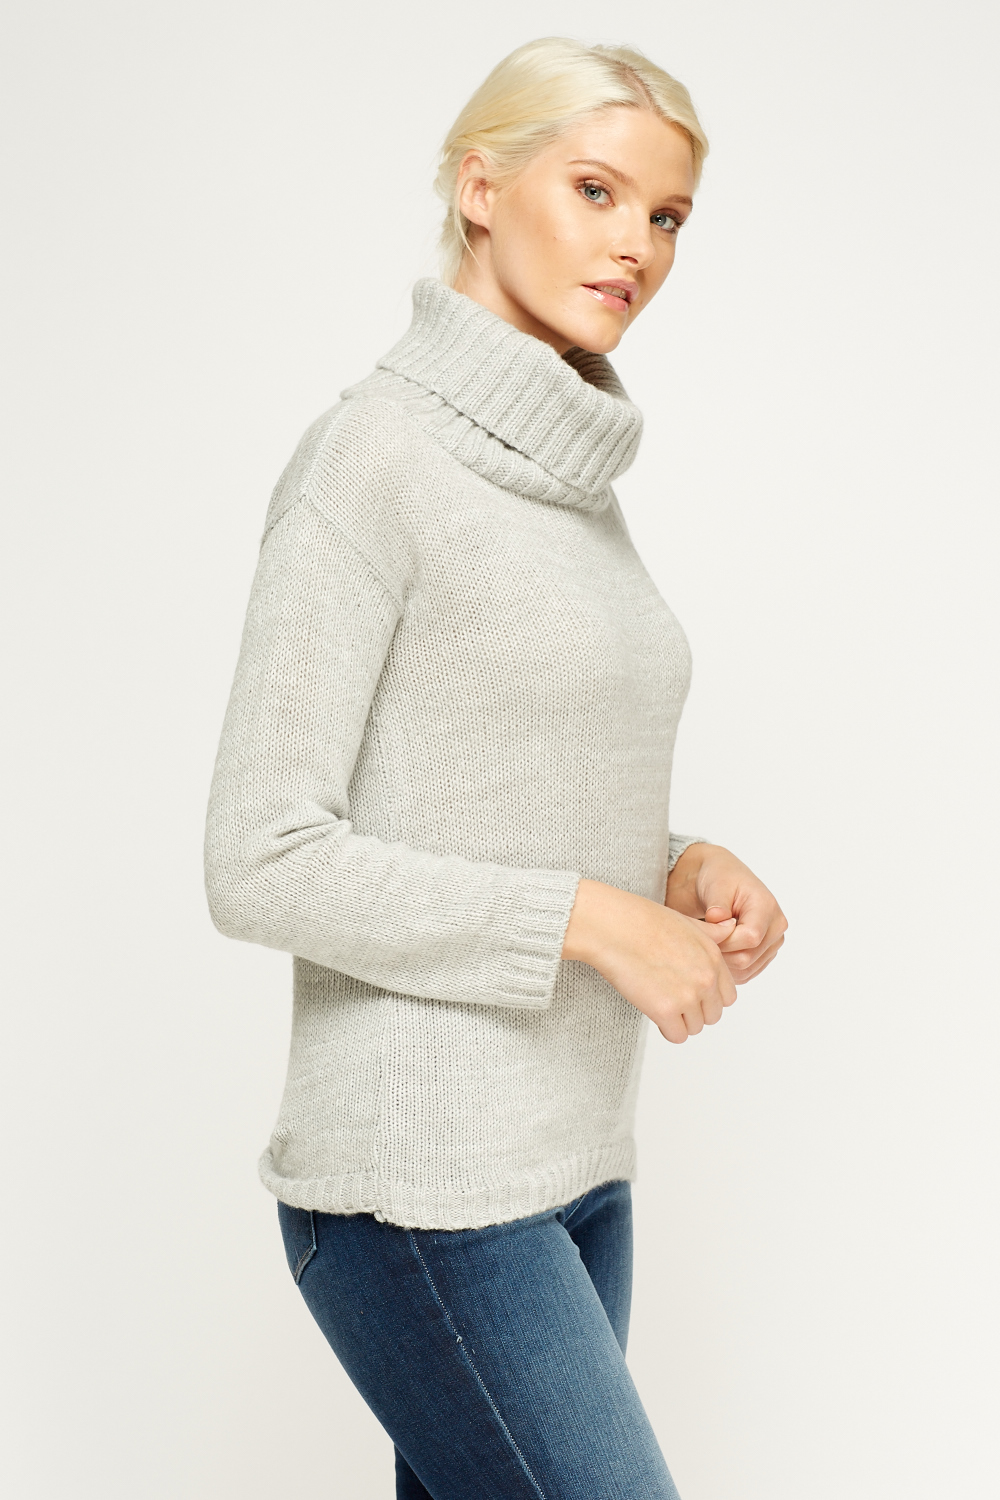 Cowl Neck Grey Knit Jumper - Just ?5